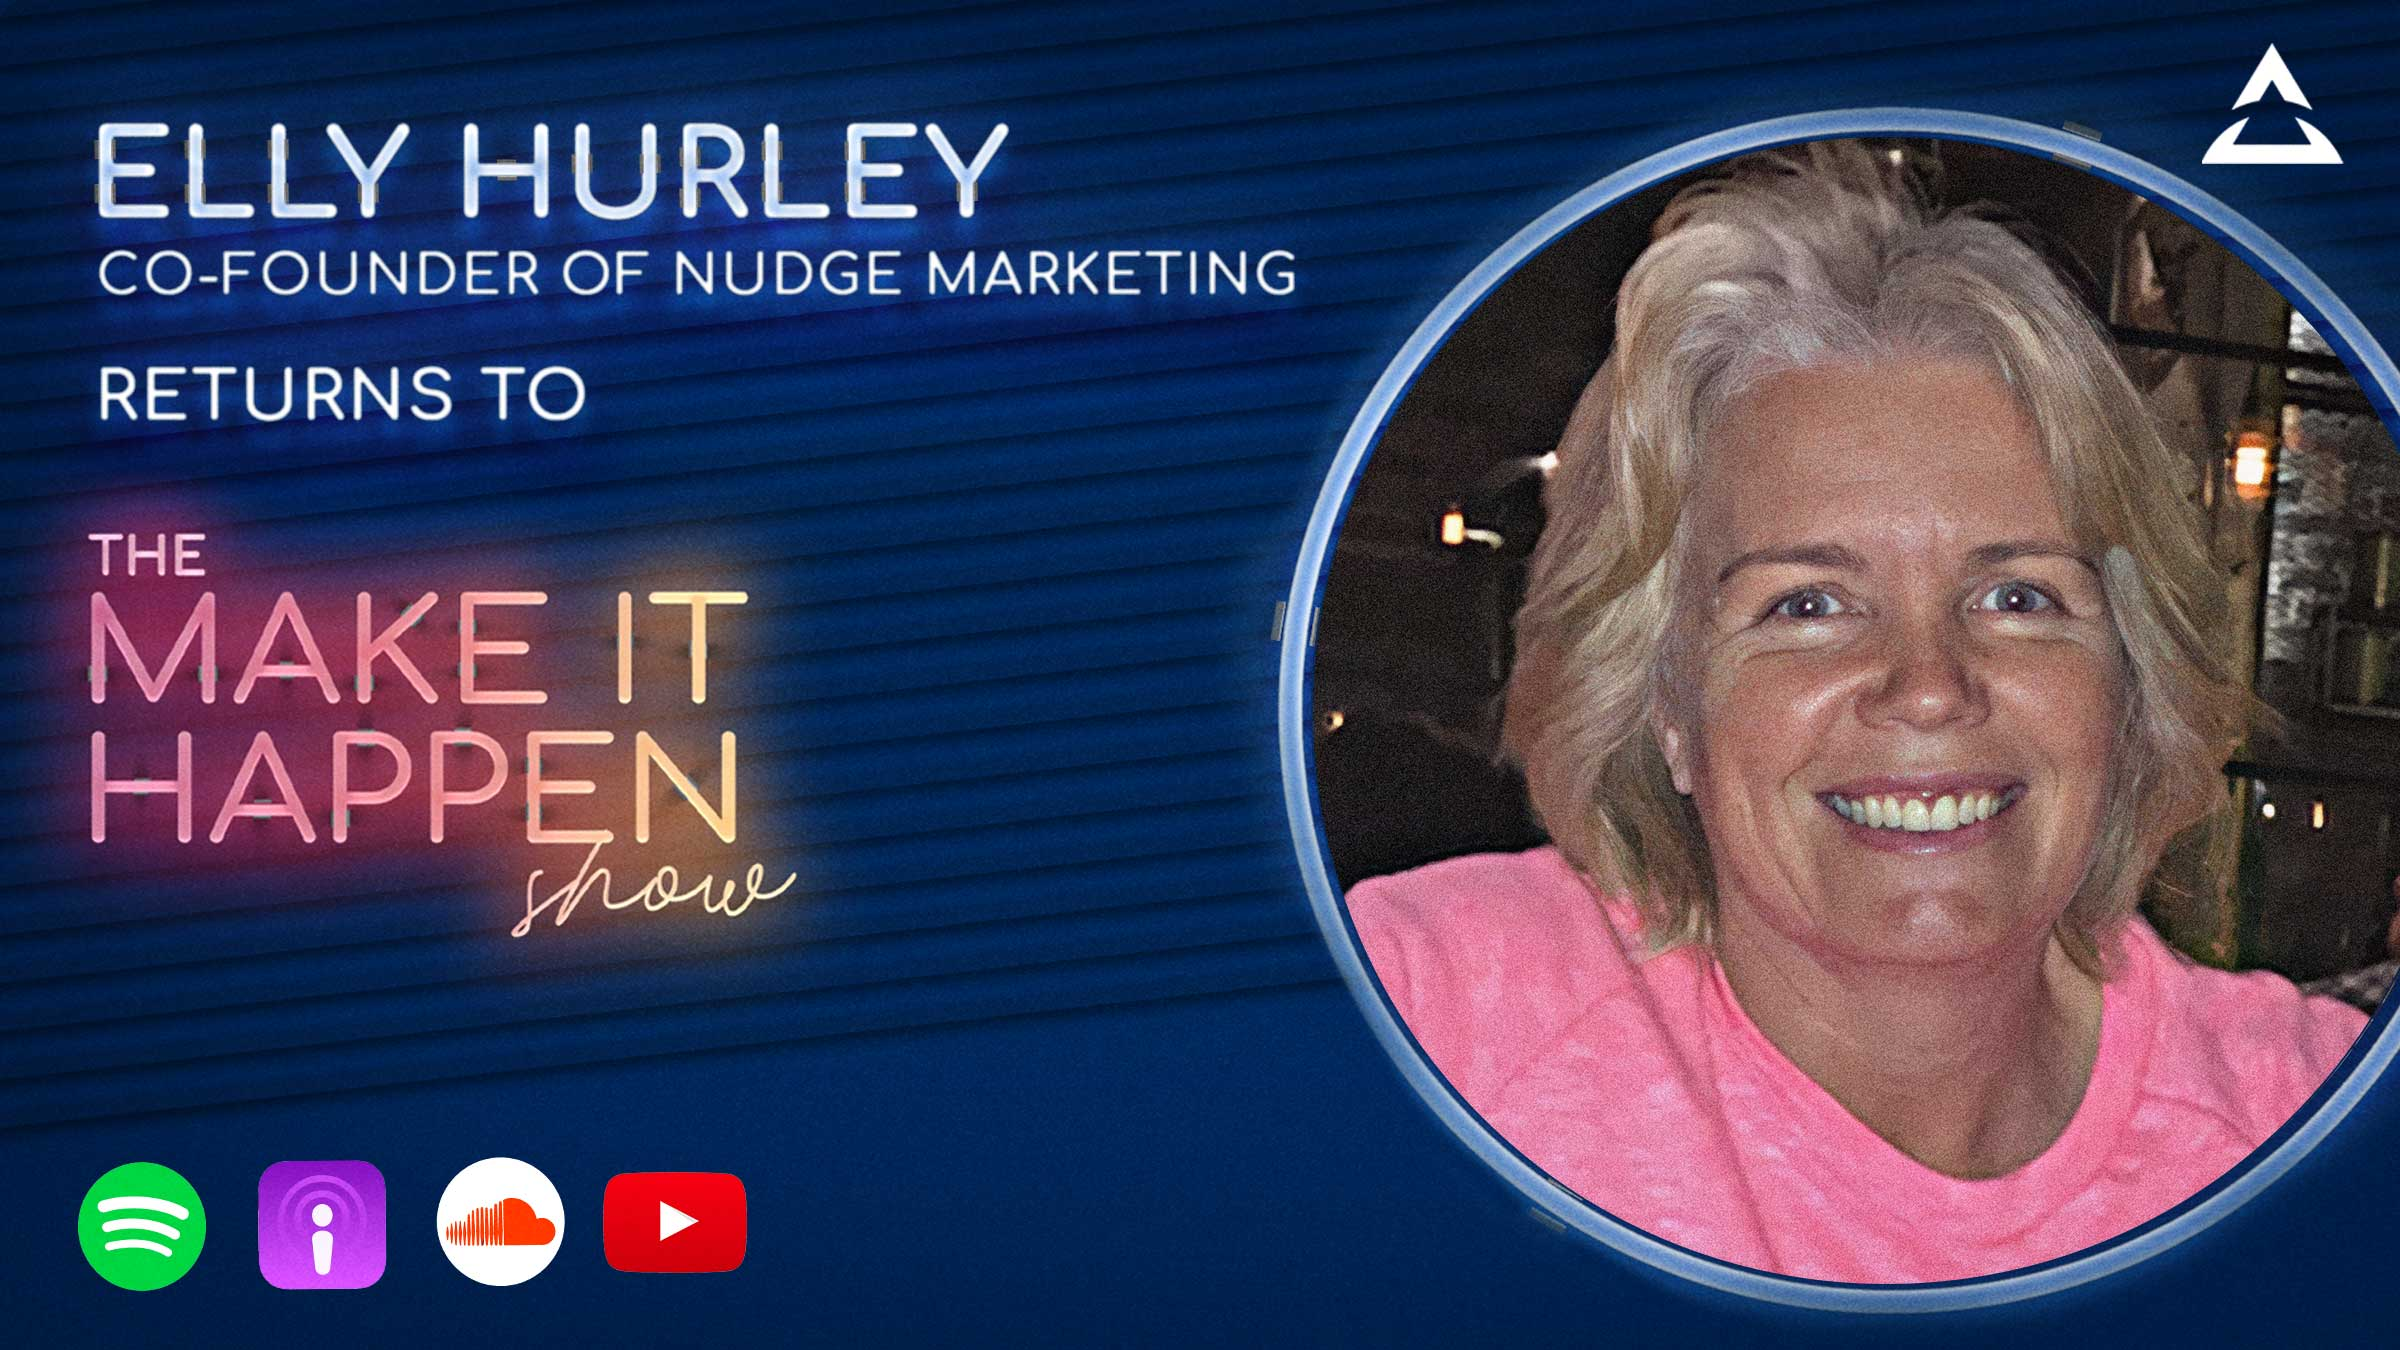 Elly Hurley returns to The Make IT Happen Show